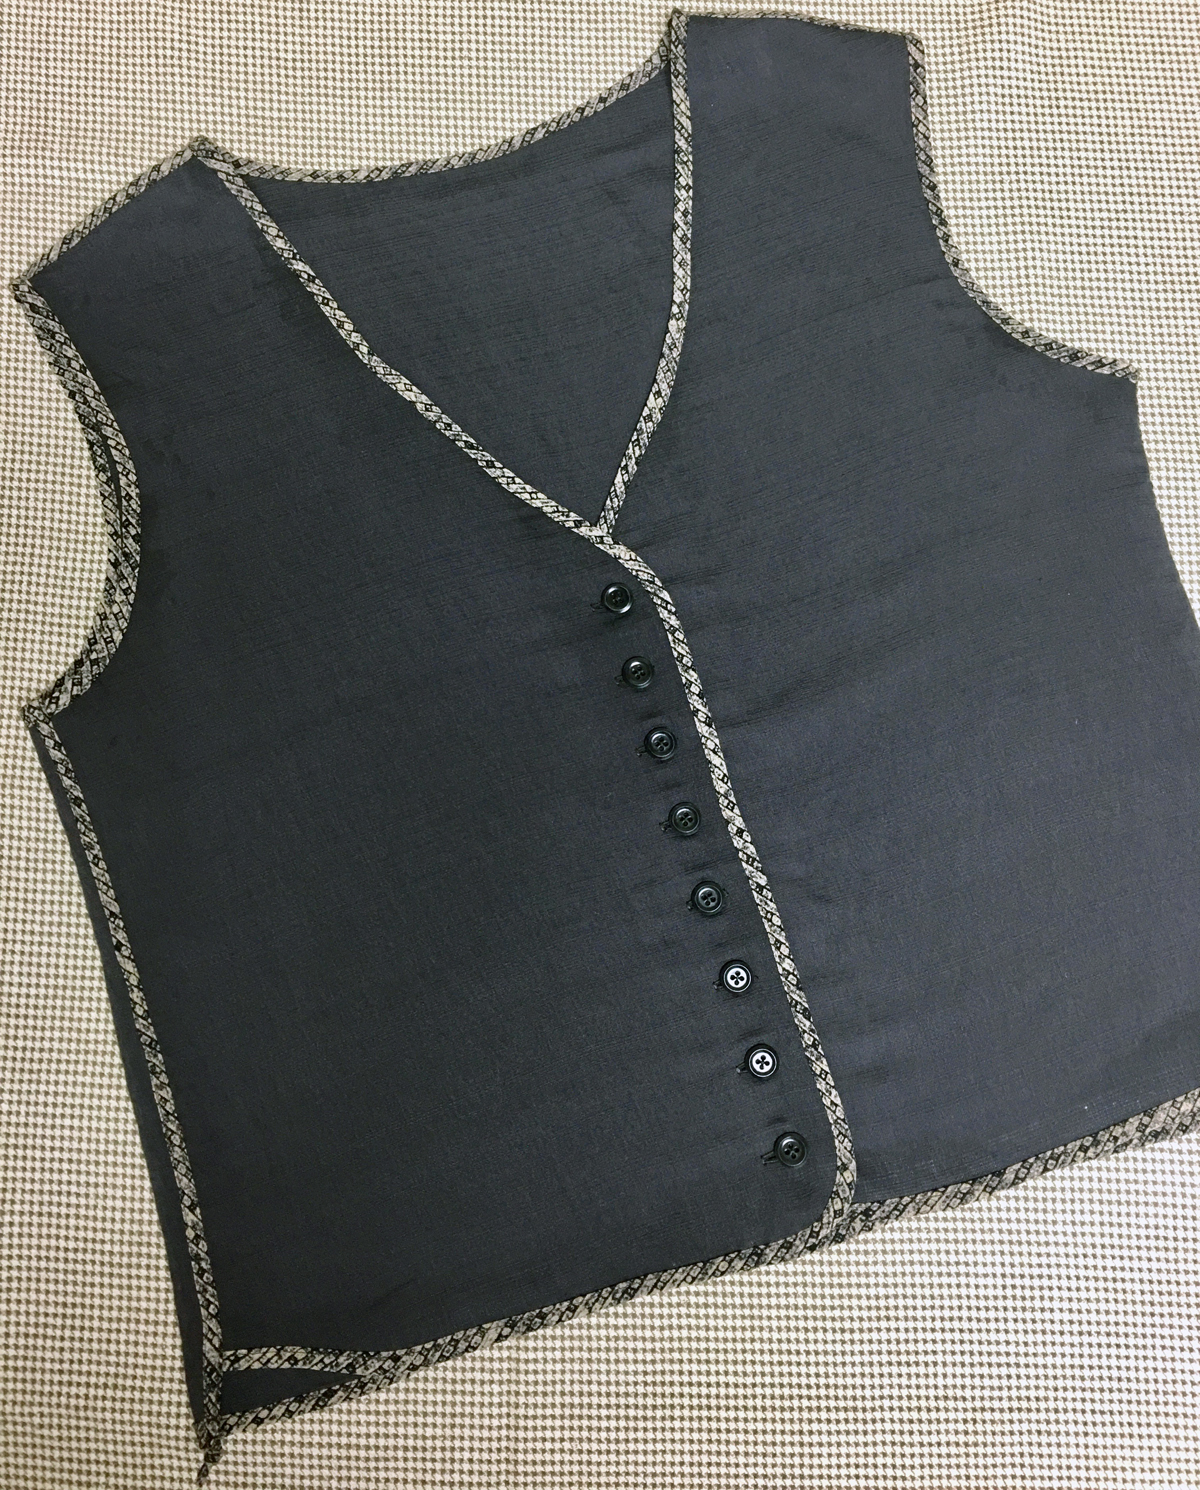 Finished dark gray vest lying flat on worksurface, all edges finished with light-colored print binding